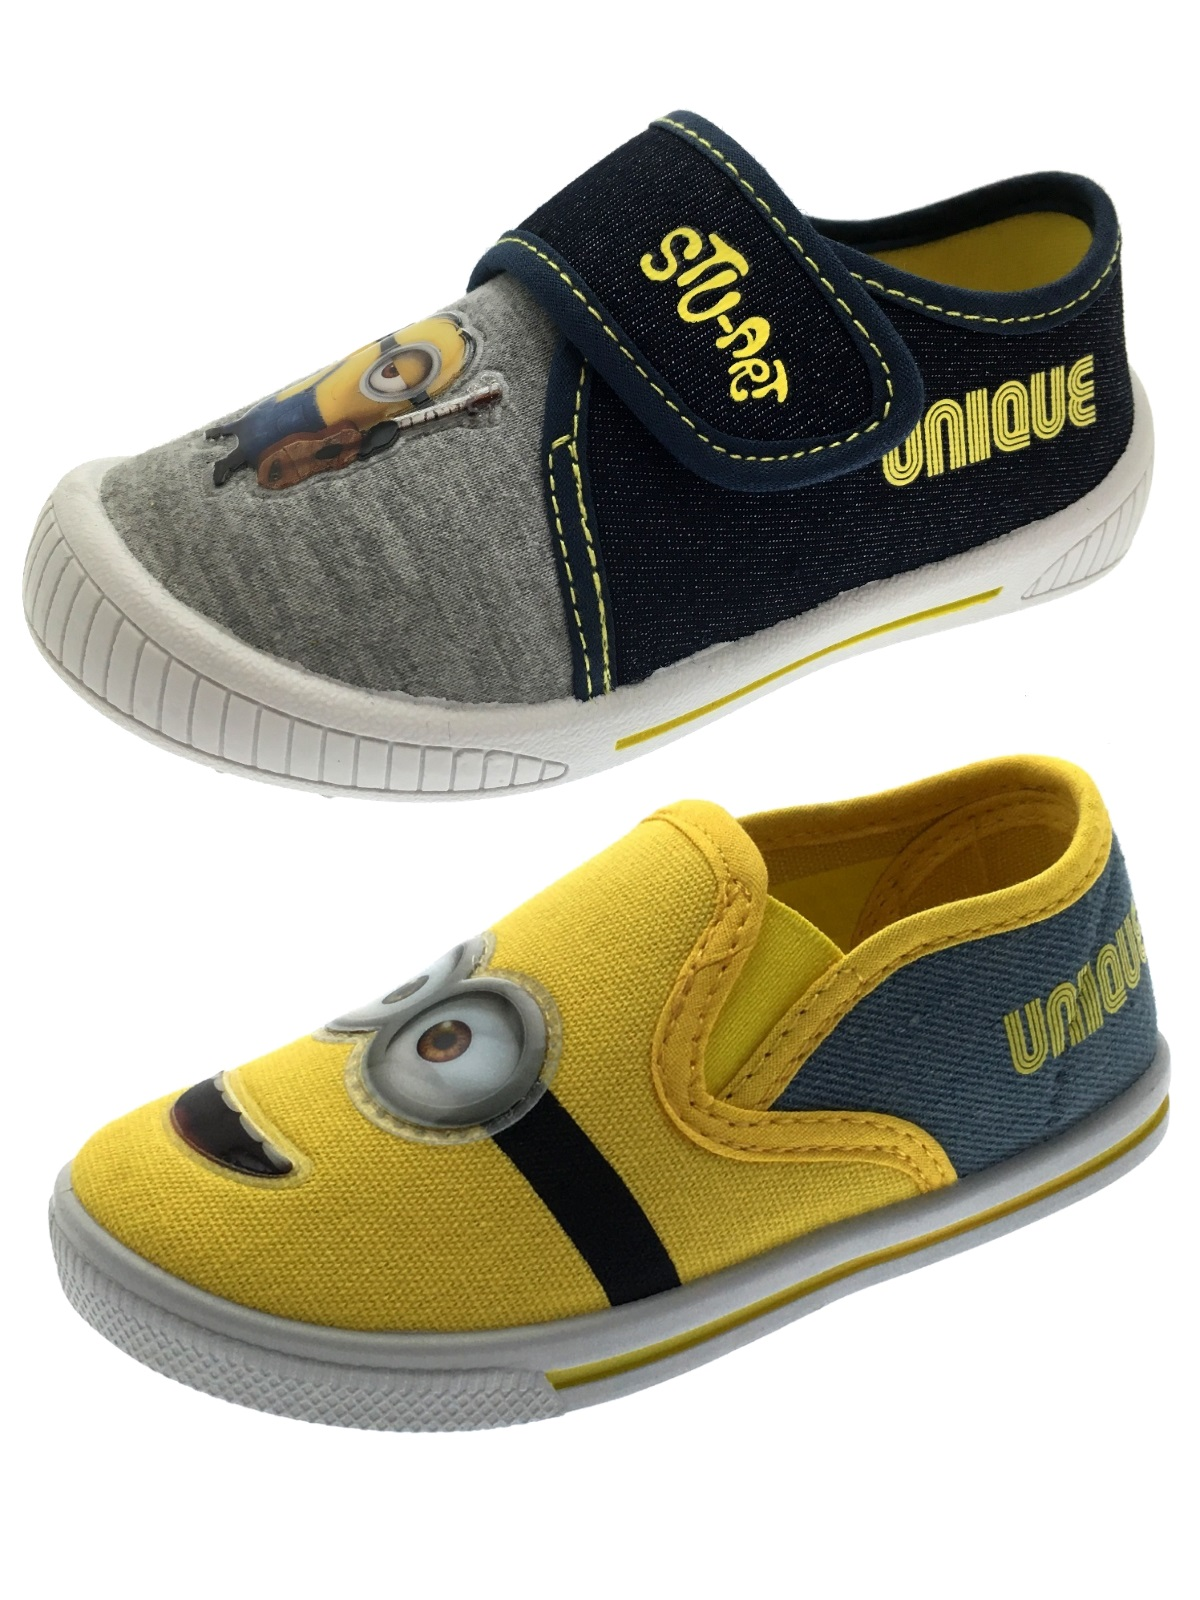 Shop eBay for great deals on Canvas Flats Shoes for Boys. You'll find new or used products in Canvas Flats Shoes for Boys on eBay. Free shipping on selected items.